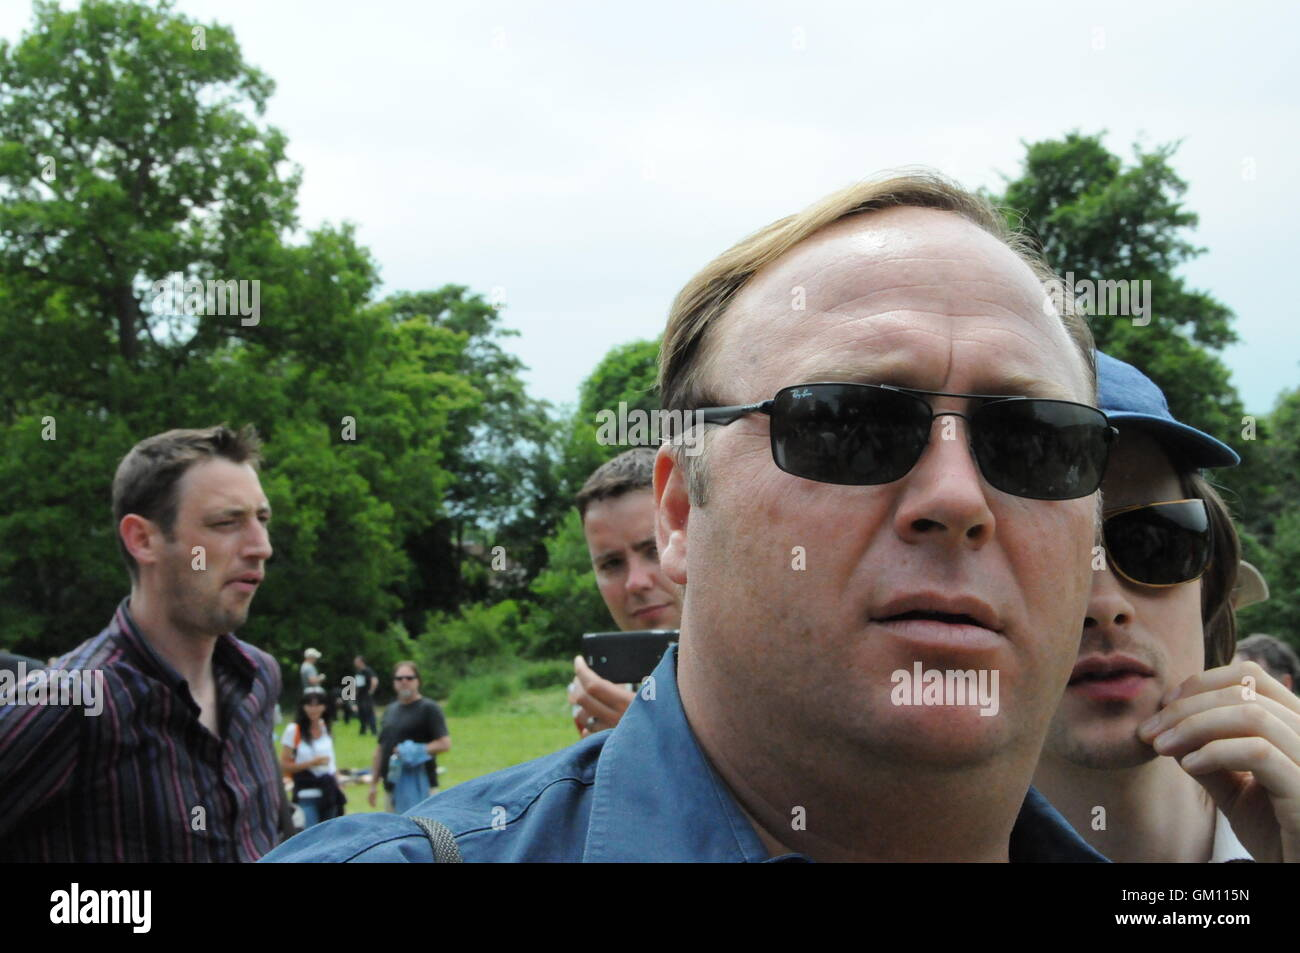 Alex Jones at the Bilderberg protest, in the grounds of the Grove Hotel, Watford, Hertfordshire, UK. - Stock Image